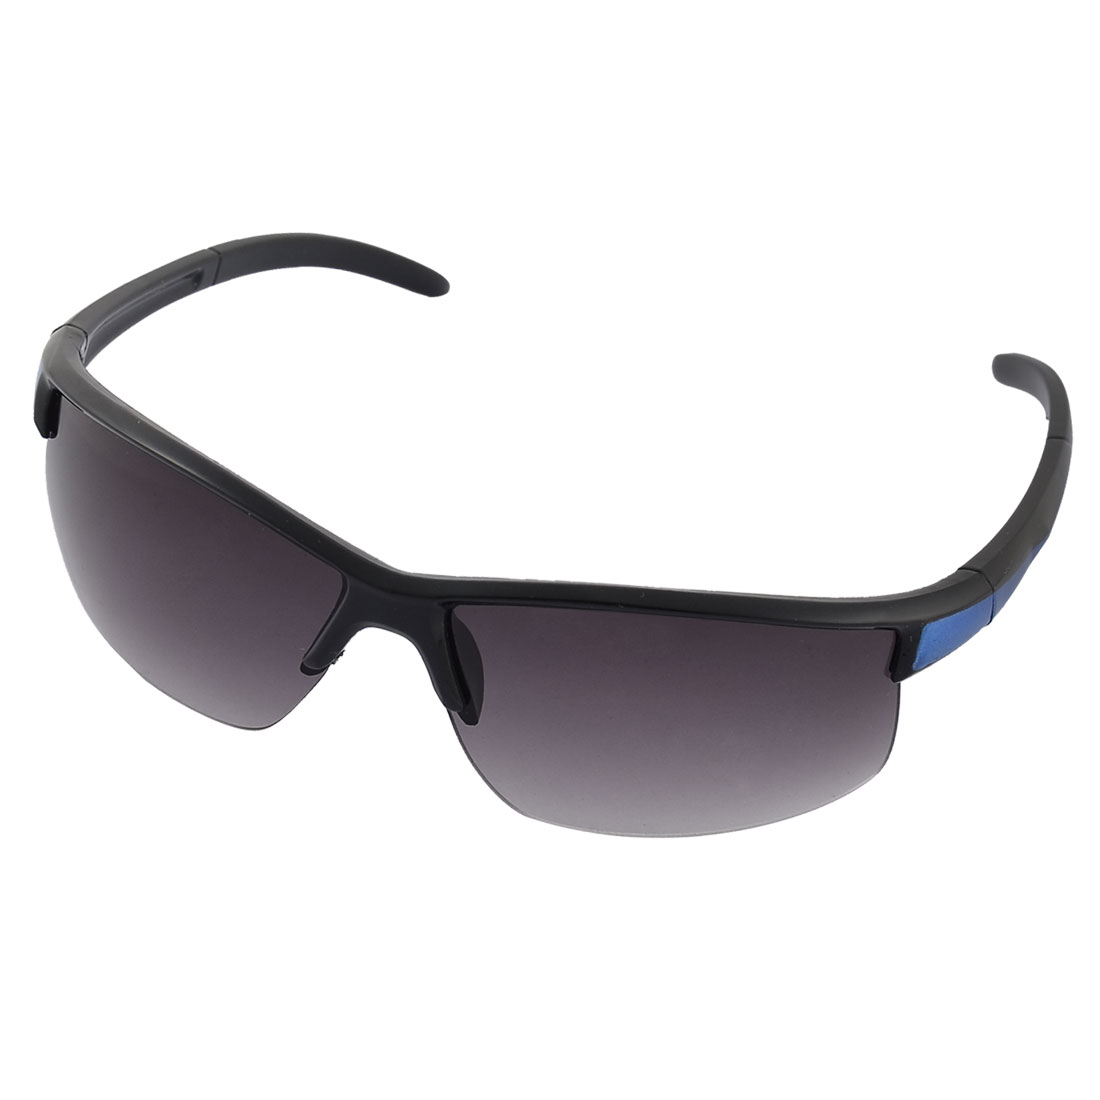 Unisex Plastic Half Rimless Colored Lens Sports Sunglasses Glasses Black Blue